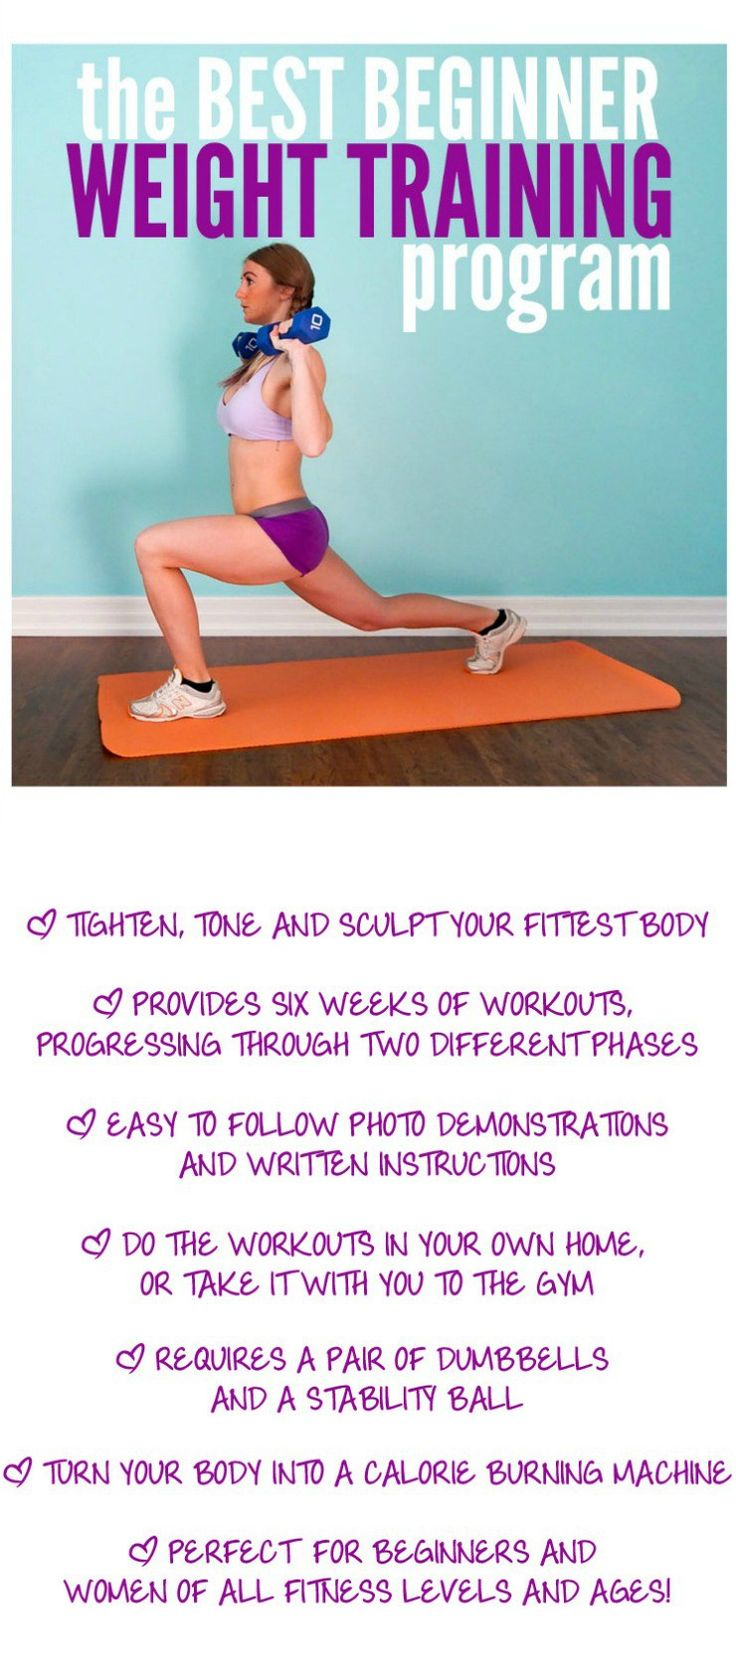 Easy to follow guide for weight training to get you the tighter, leaner body you want. It's all in the weights!